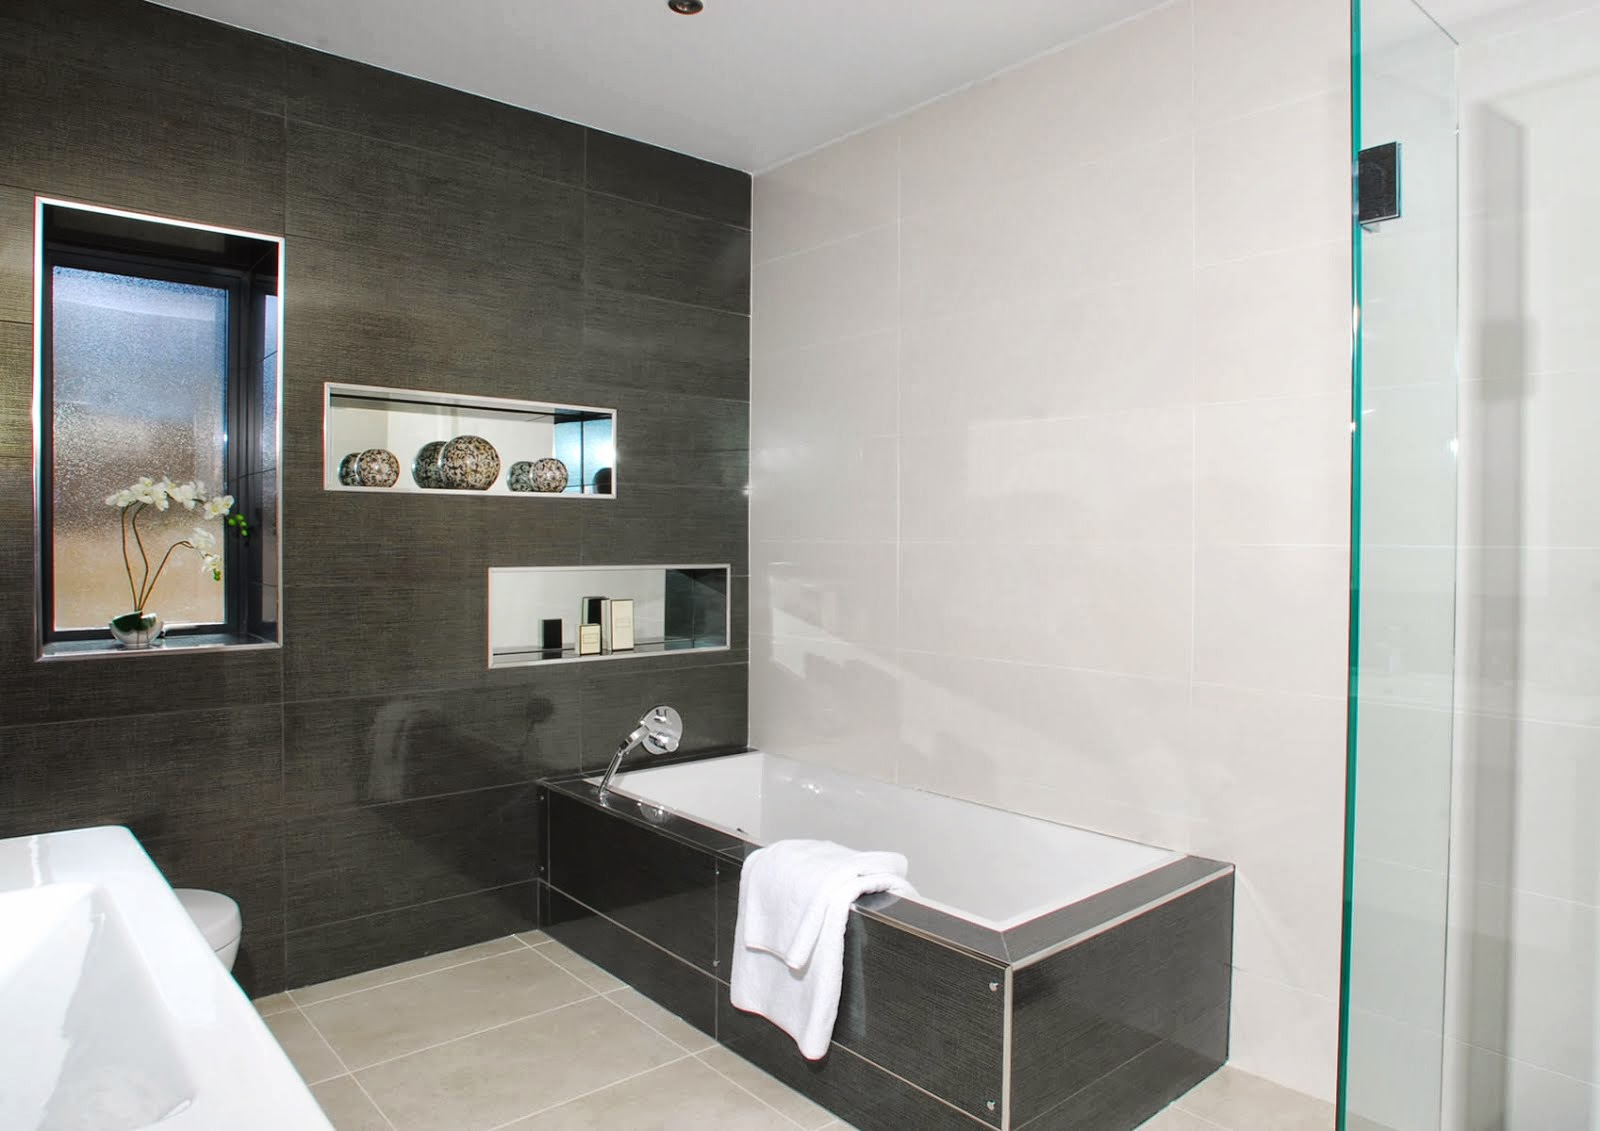 Bathroom design ideas uk for Tiles bathroom design